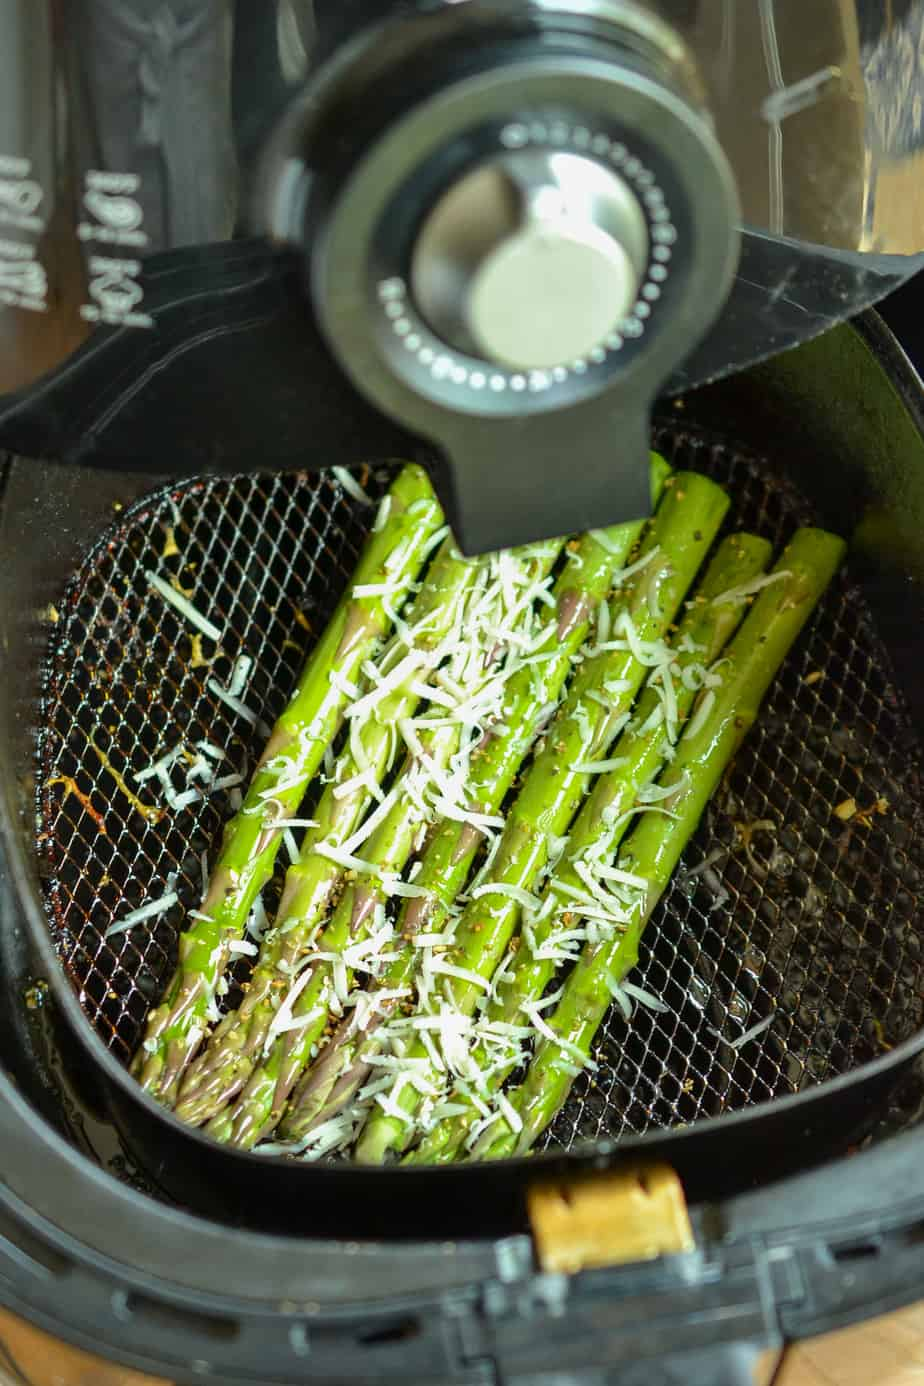 Lay the asparagus in a single layer in the basket of the air fryer.